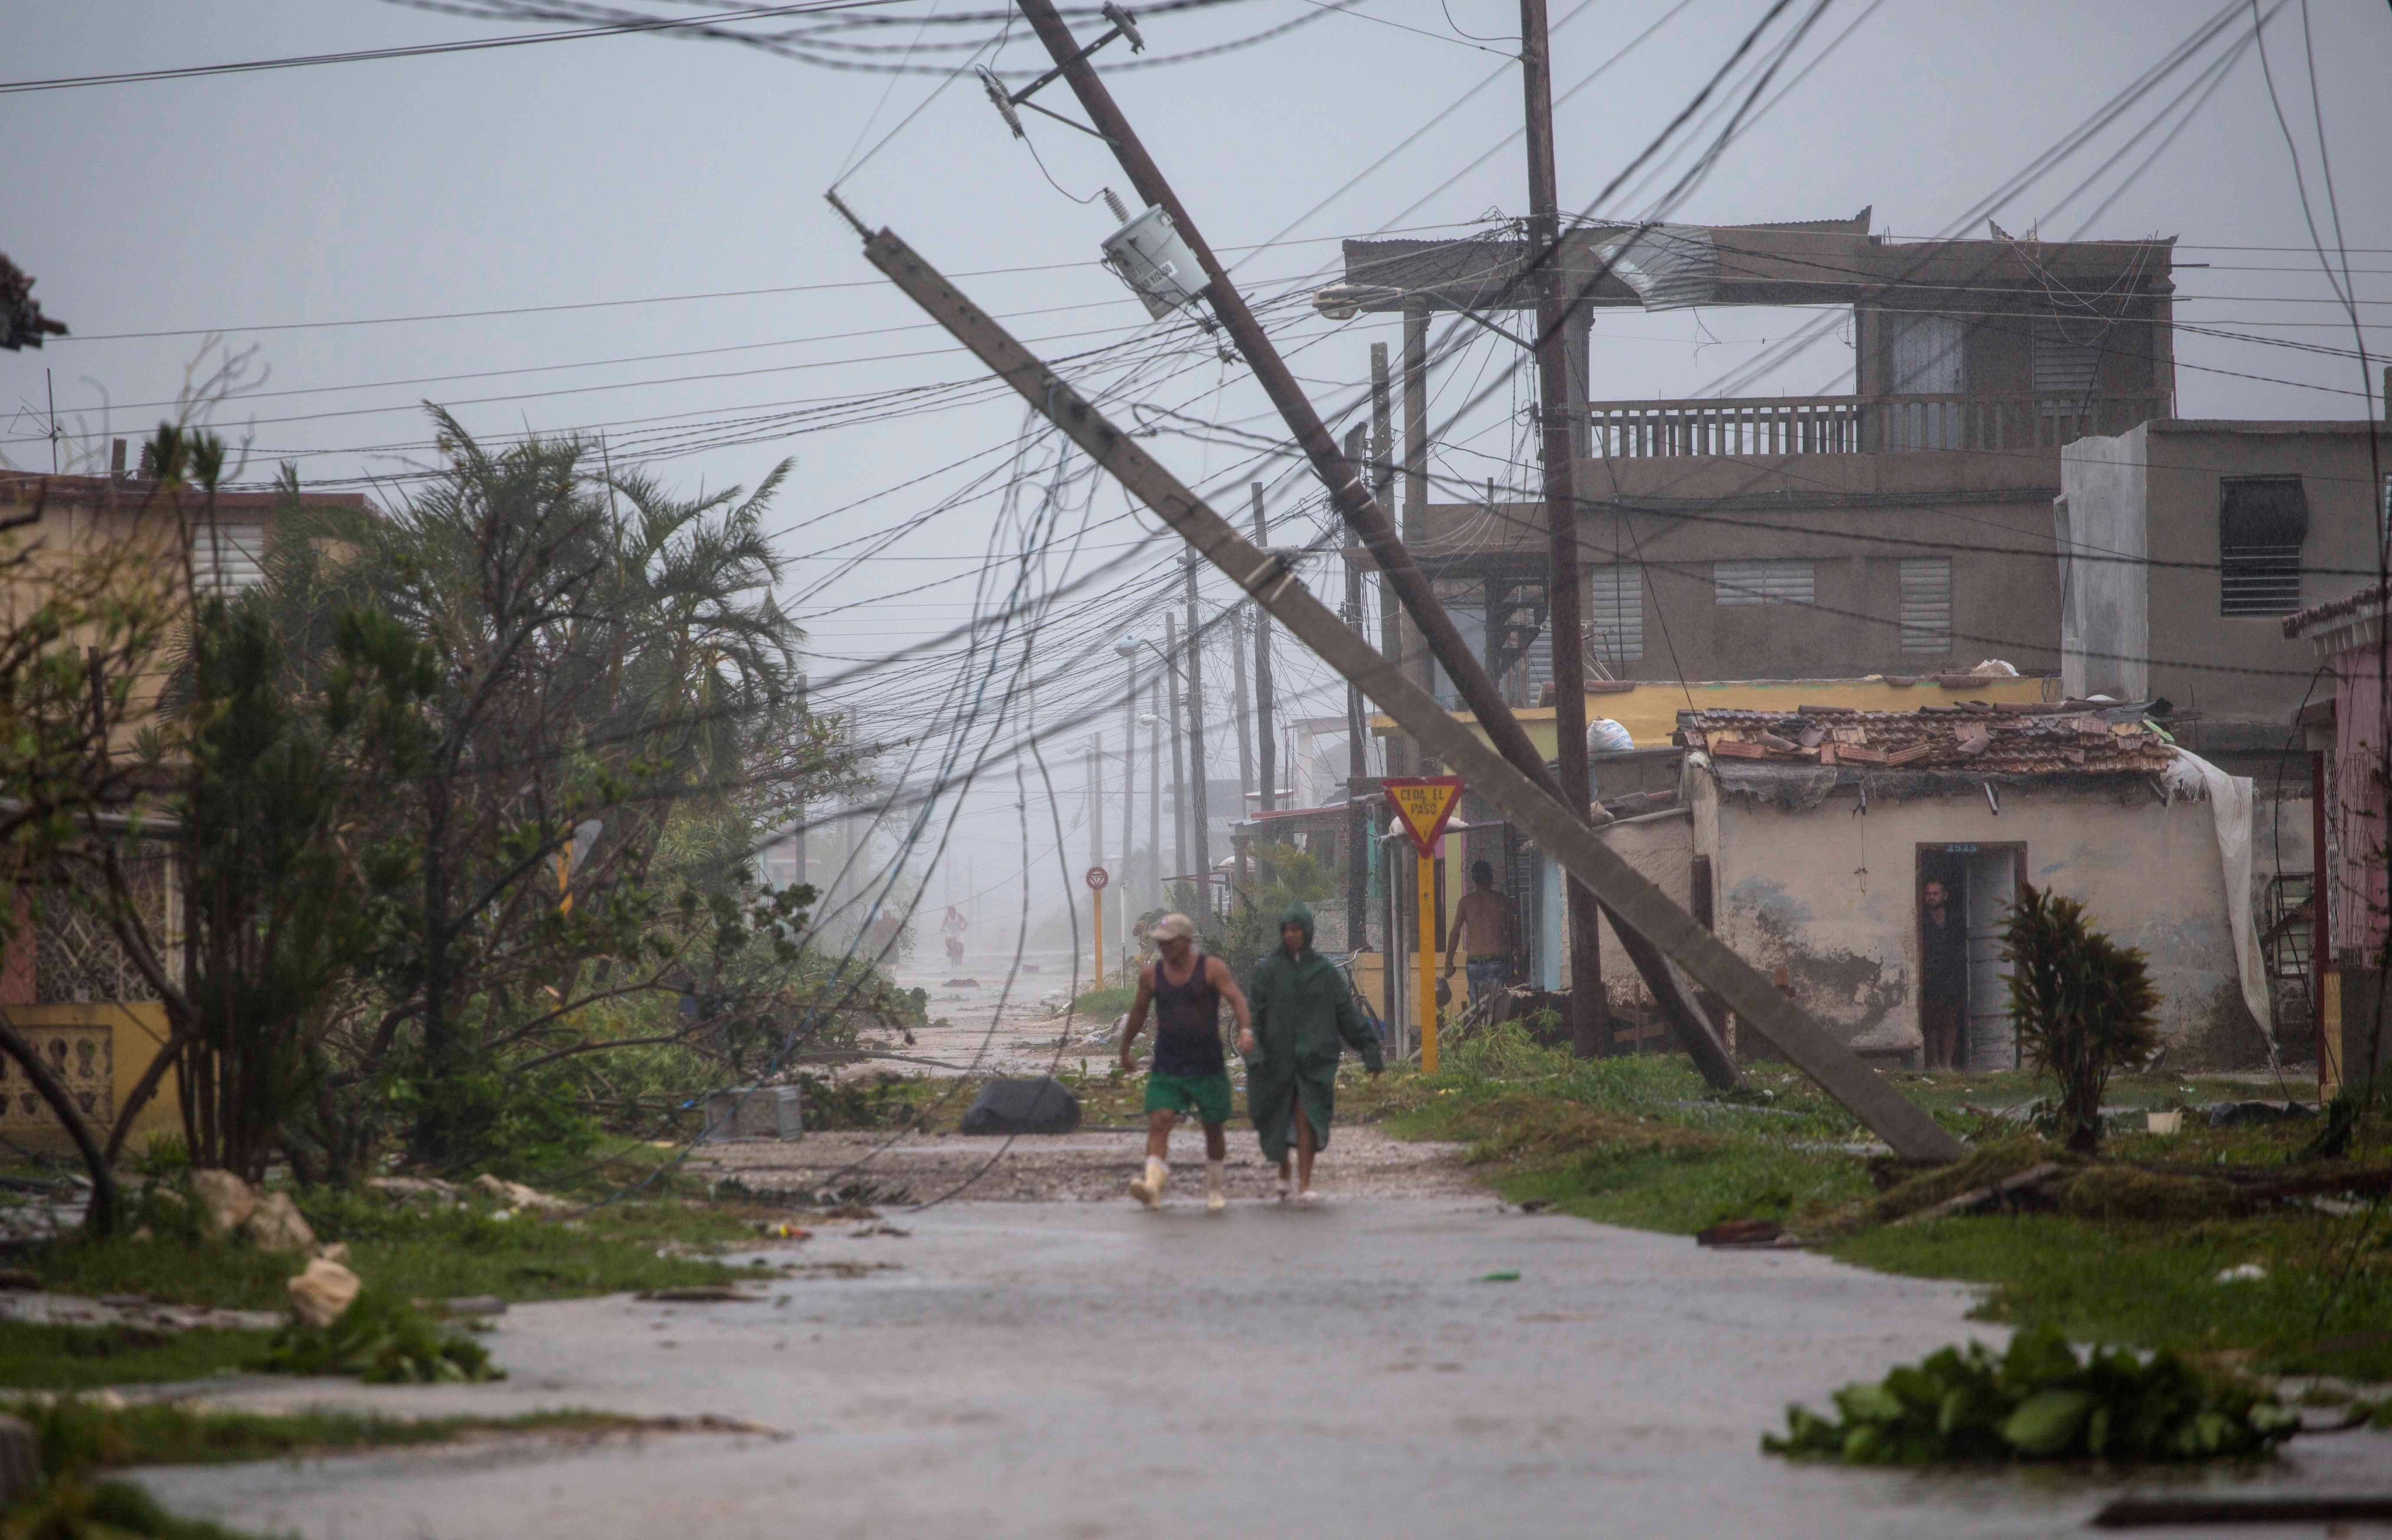 Residents venture out after the passing of Hurricane Irma in Caibarien, Cuba, Saturday, Sept. 9, 2017. There were no reports of deaths or injuries after heavy rain and winds from Irma lashed northeastern Cuba. Seawater surged three blocks inland in Caibarien. (AP Photo/Desmond Boylan)